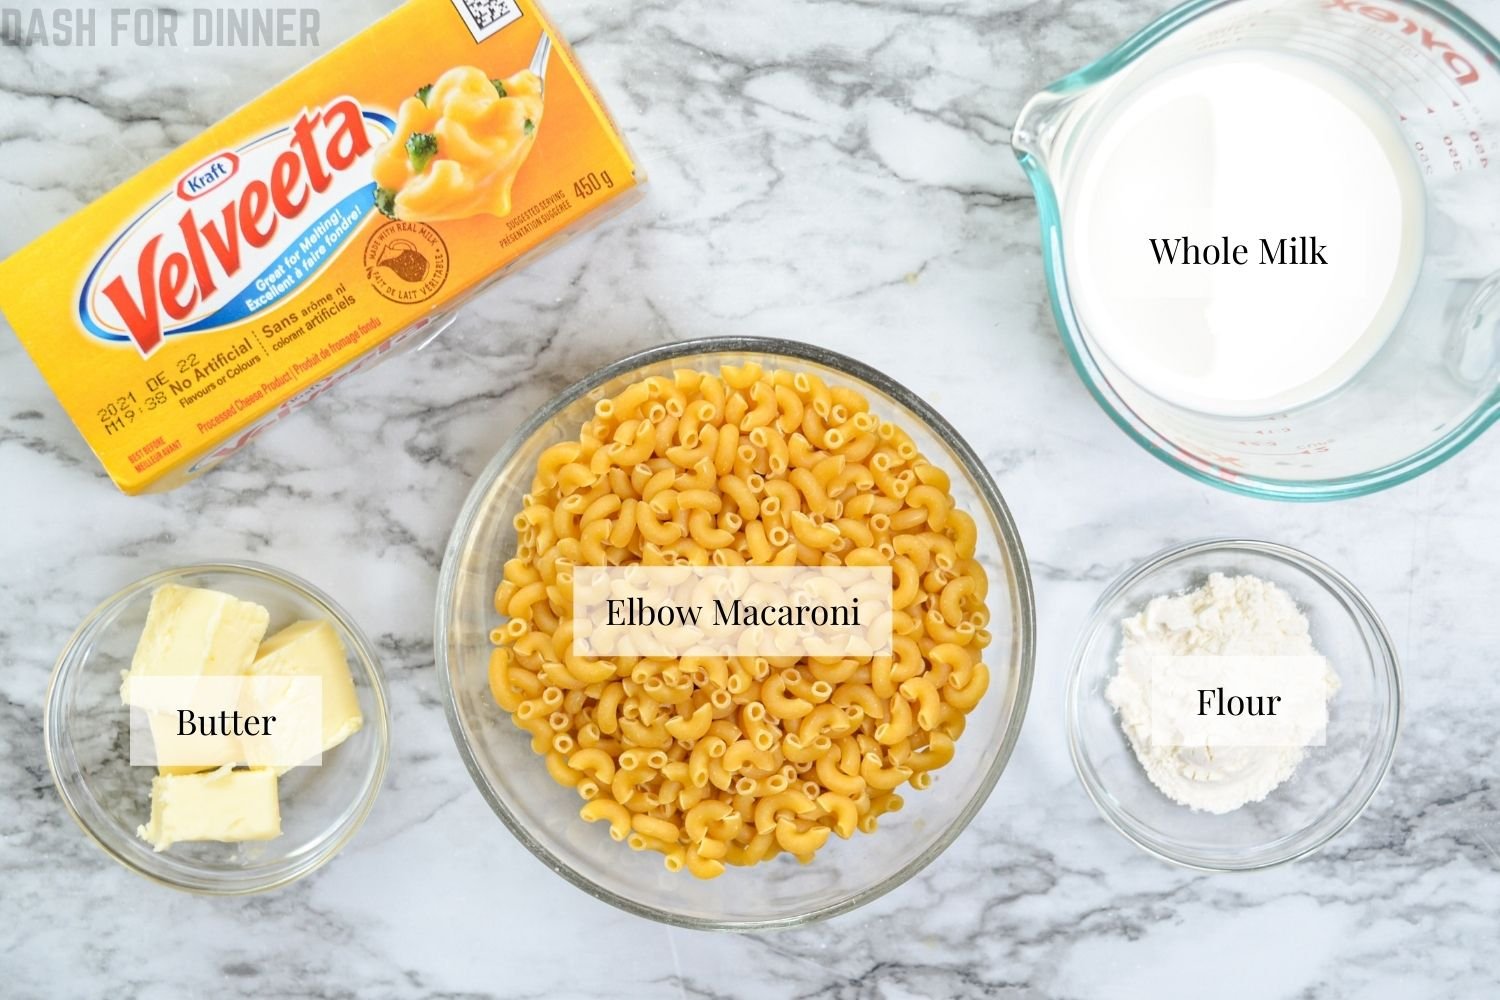 The ingredients needed to make 5 ingredient instant pot mac and cheese.